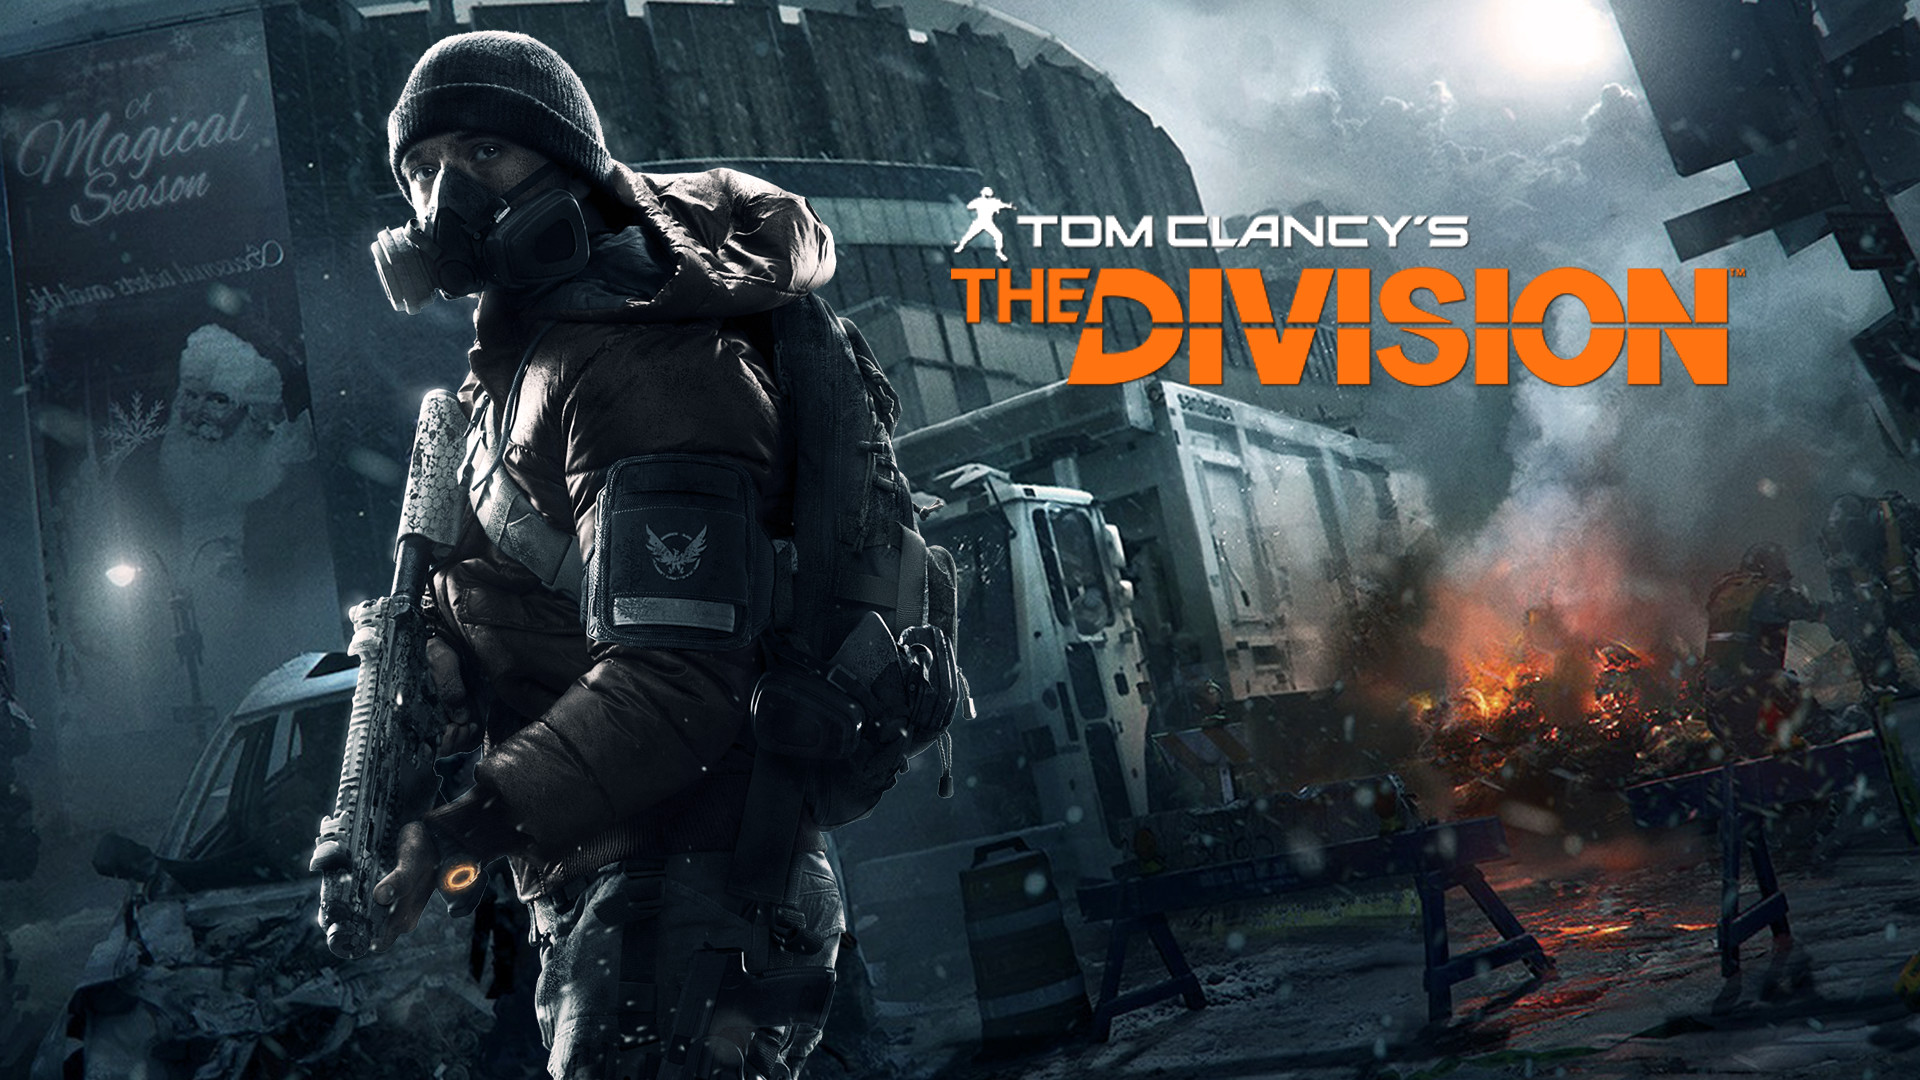 … The Division – PS4 HD Wallpaper by EversonTomiello